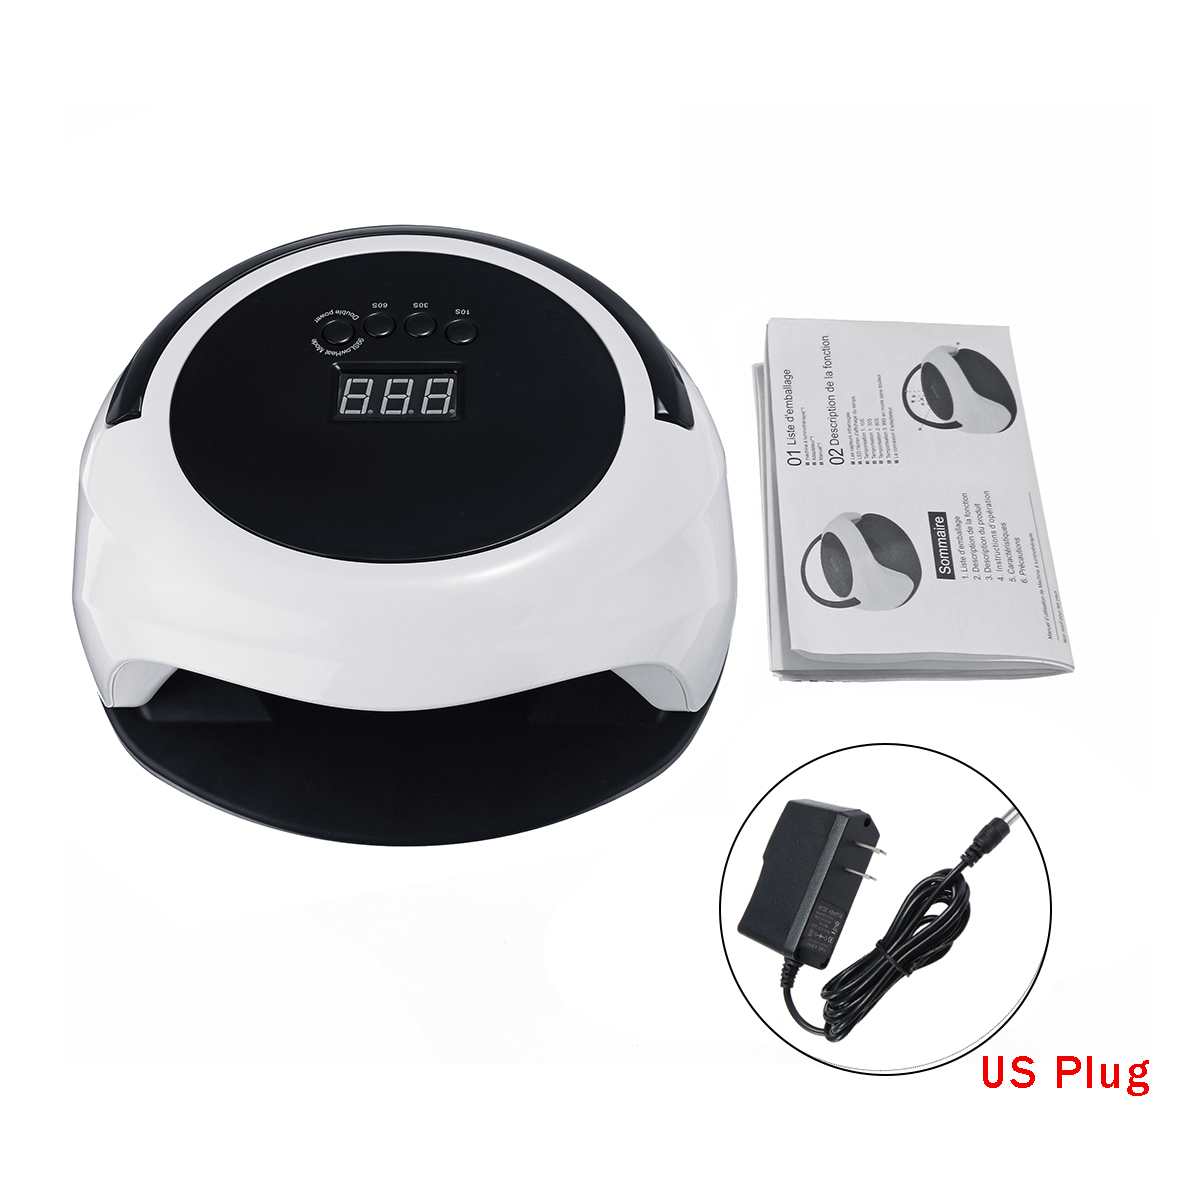 75W Professional LED UV Lamp Nail Dryer Machine